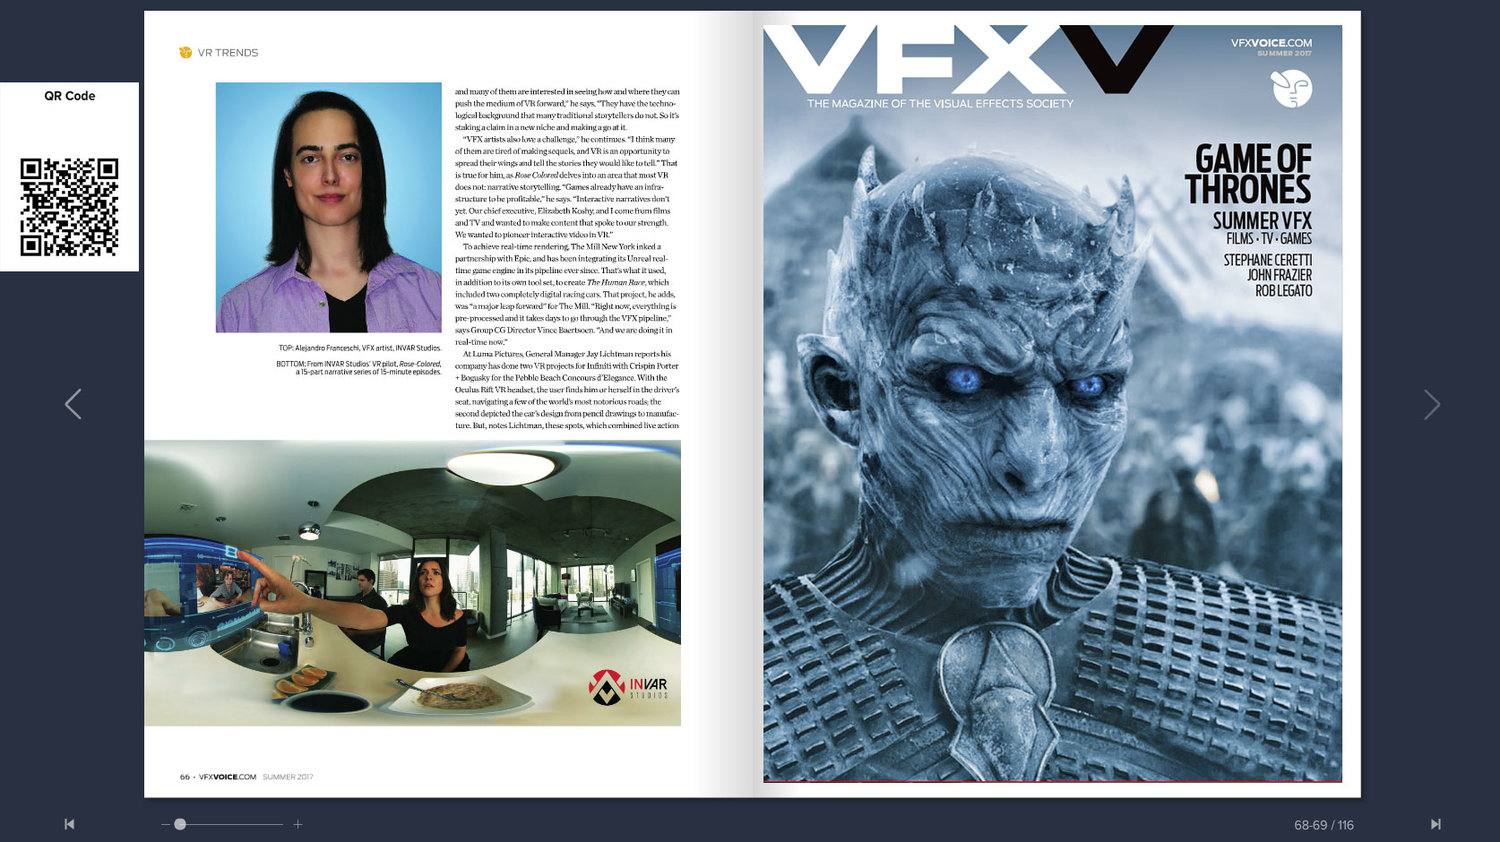 VFX_VOICE_VISUAL_EFFECTS_SOCIETY_ALEJANDRO_FRANCESCHI_INTERVIEW_for_ROSE_COLORED.jpg